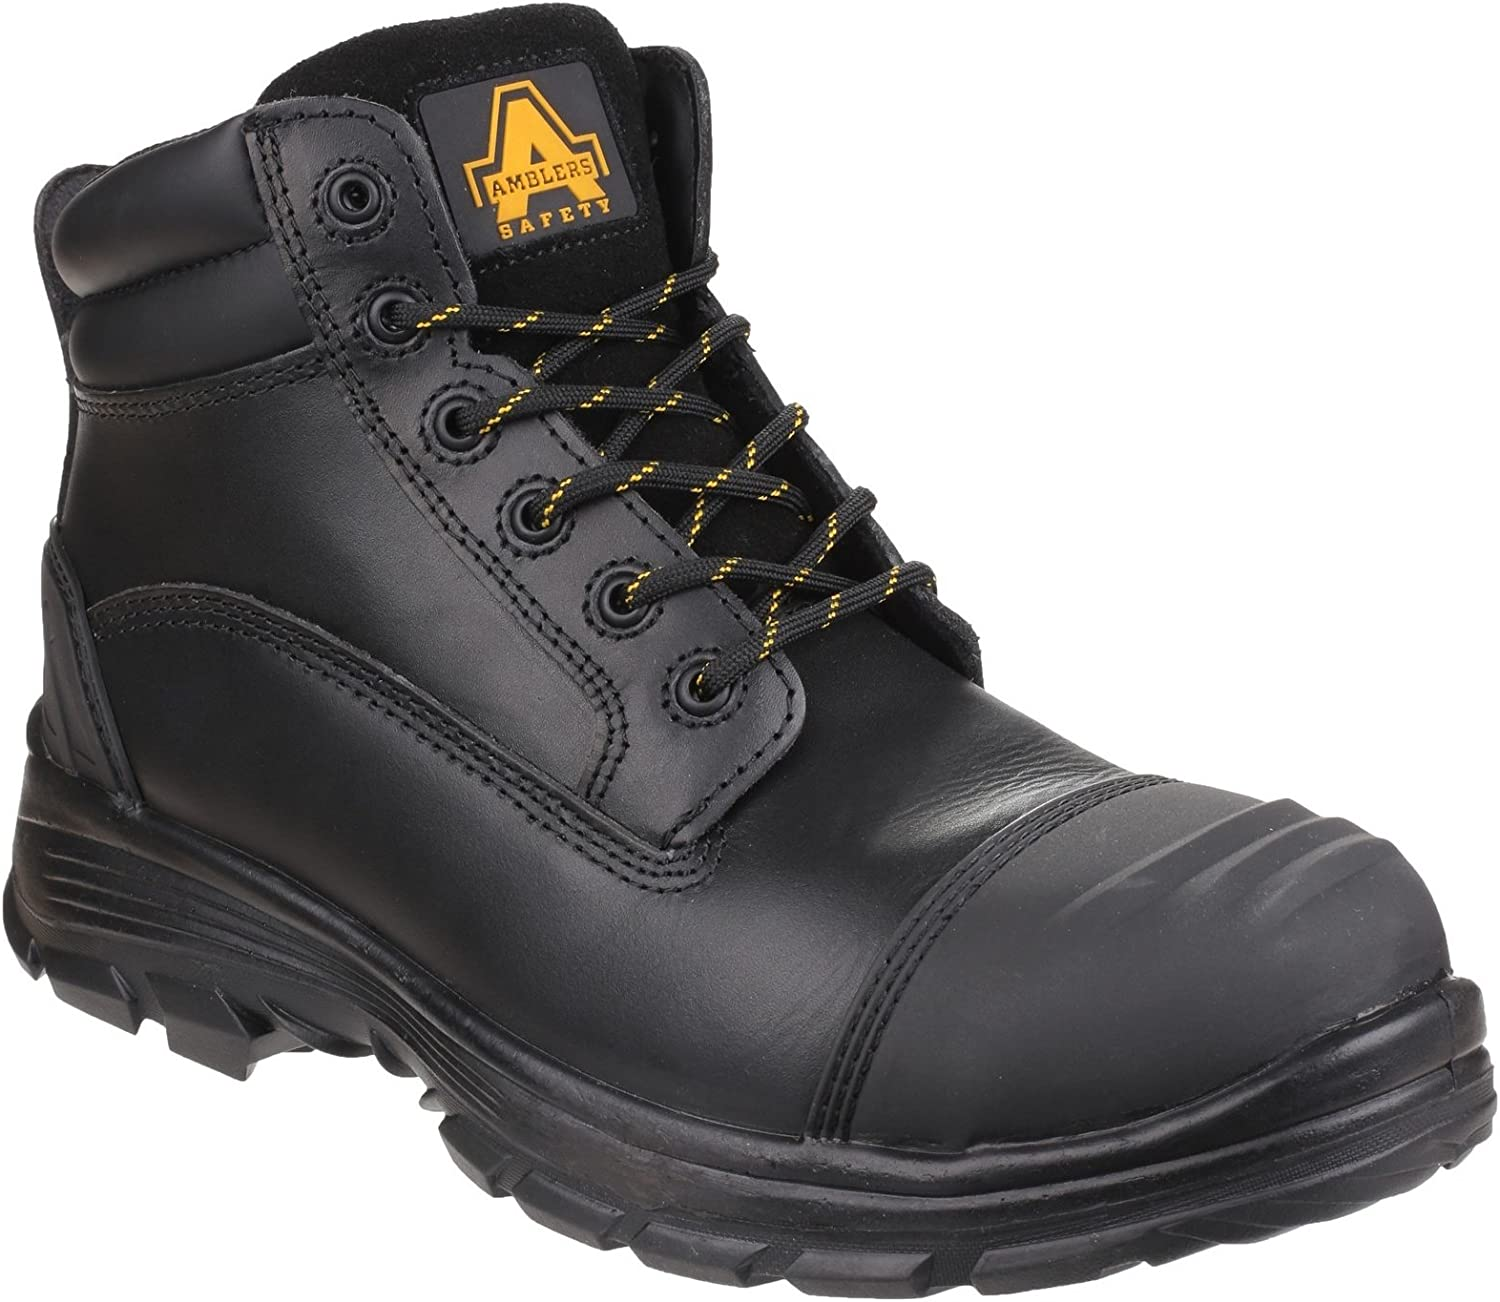 Amblers Safety Mens AS201 QUANTOK S3 PU Rubber Safety Boot Black Size UK 8 EU 42